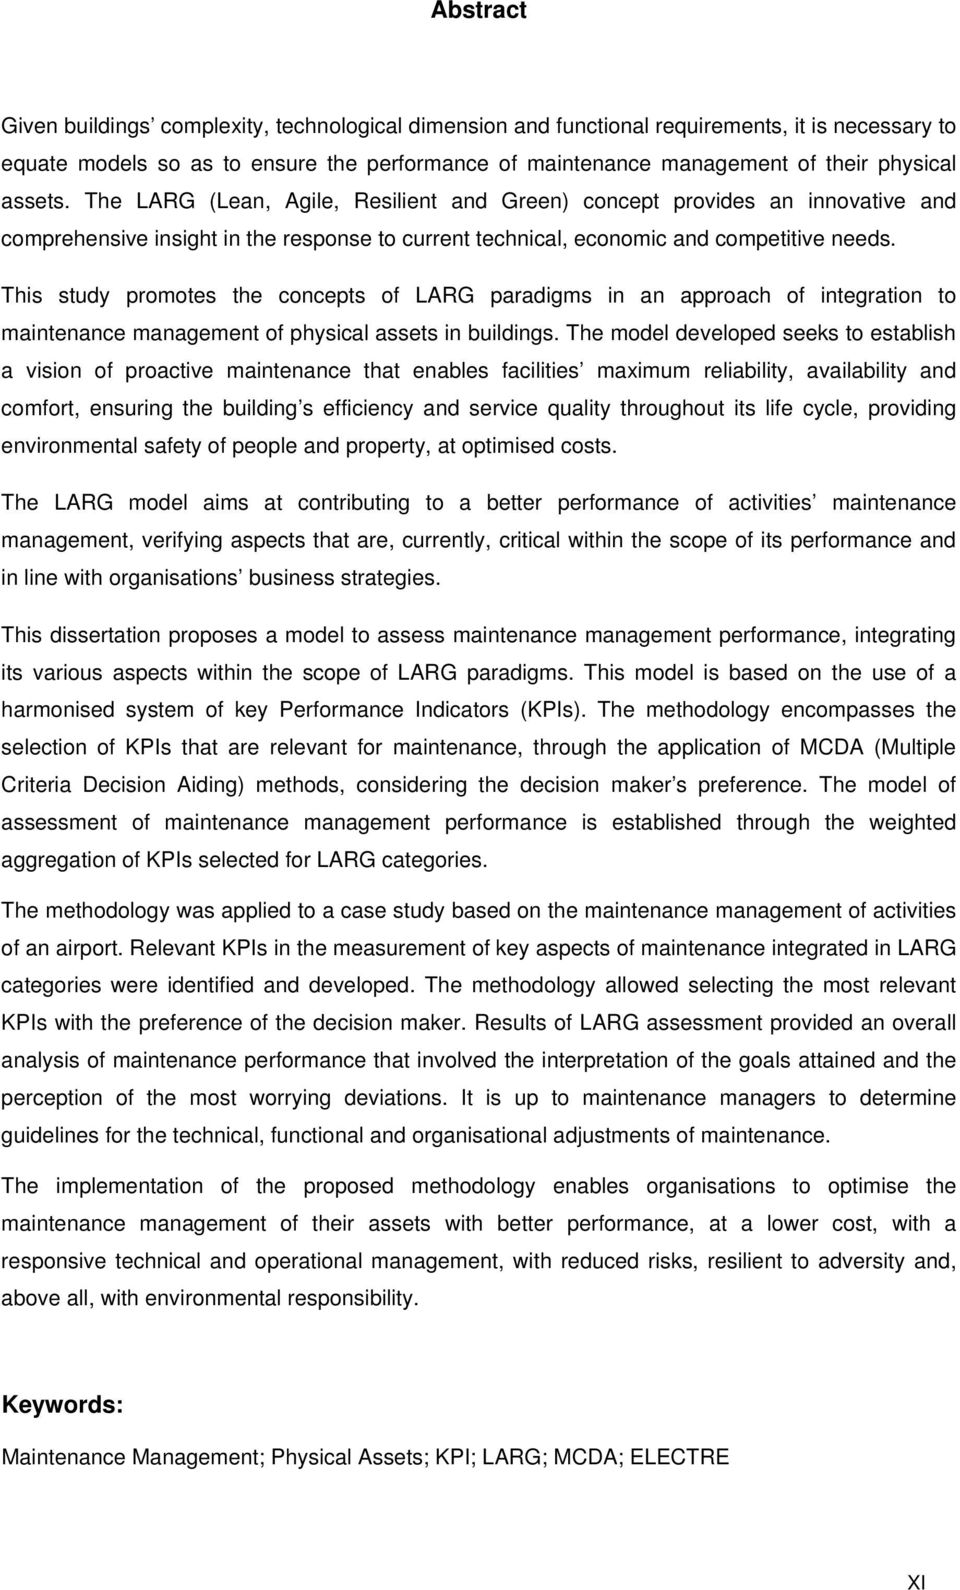 This study promotes the concepts of LARG paradigms in an approach of integration to maintenance management of physical assets in buildings.